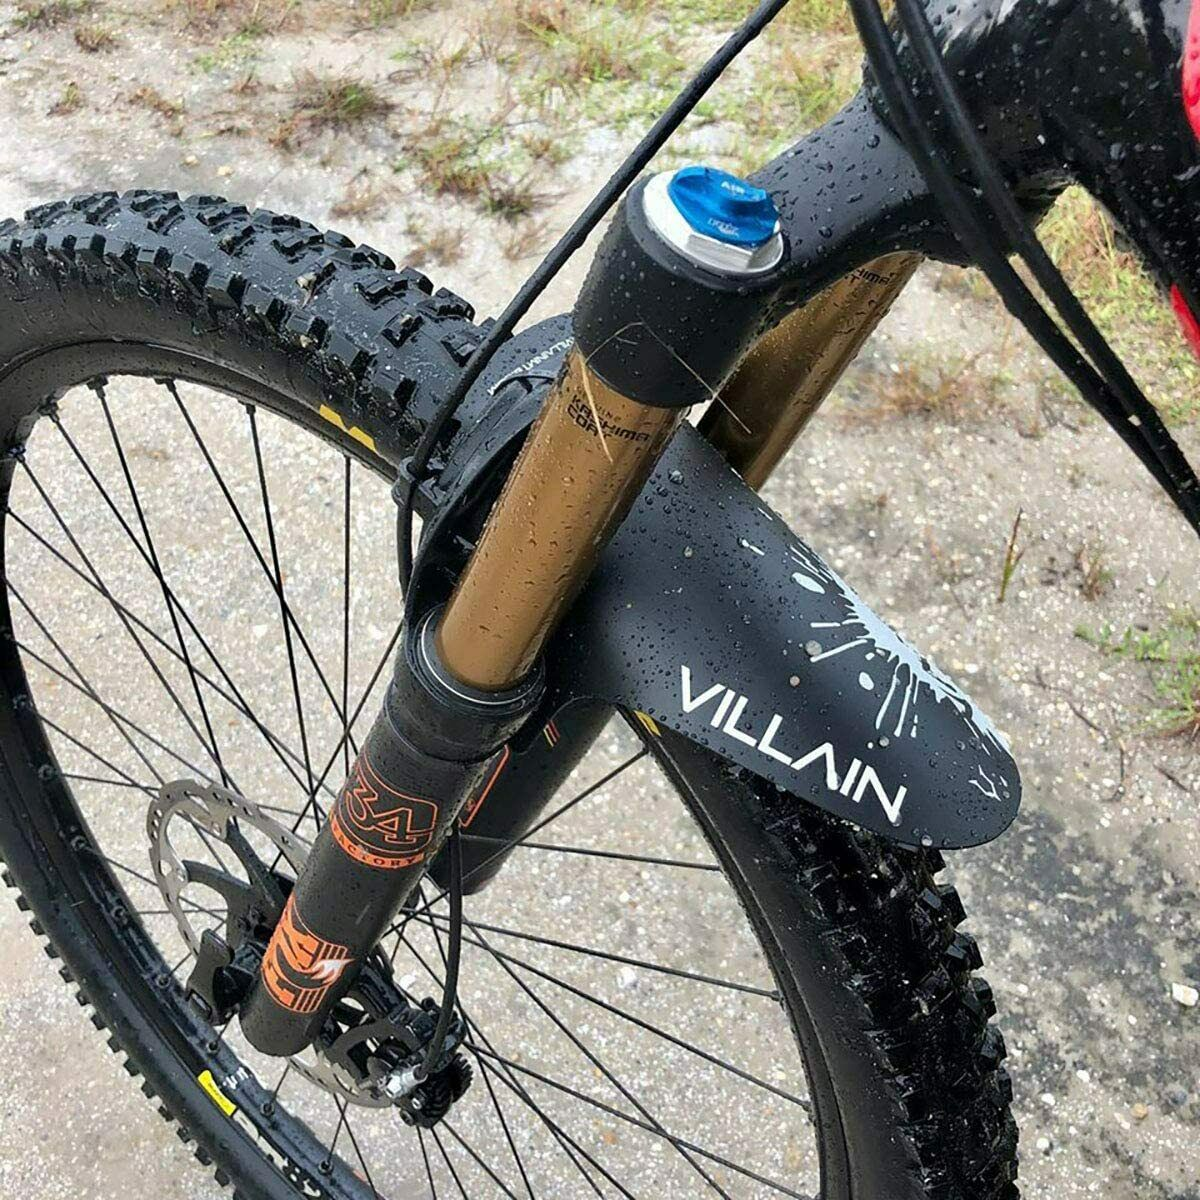 Villain Vandal Mudguard, Mountain Bike Front And Rear Bicycle Fender In Black - $19.99